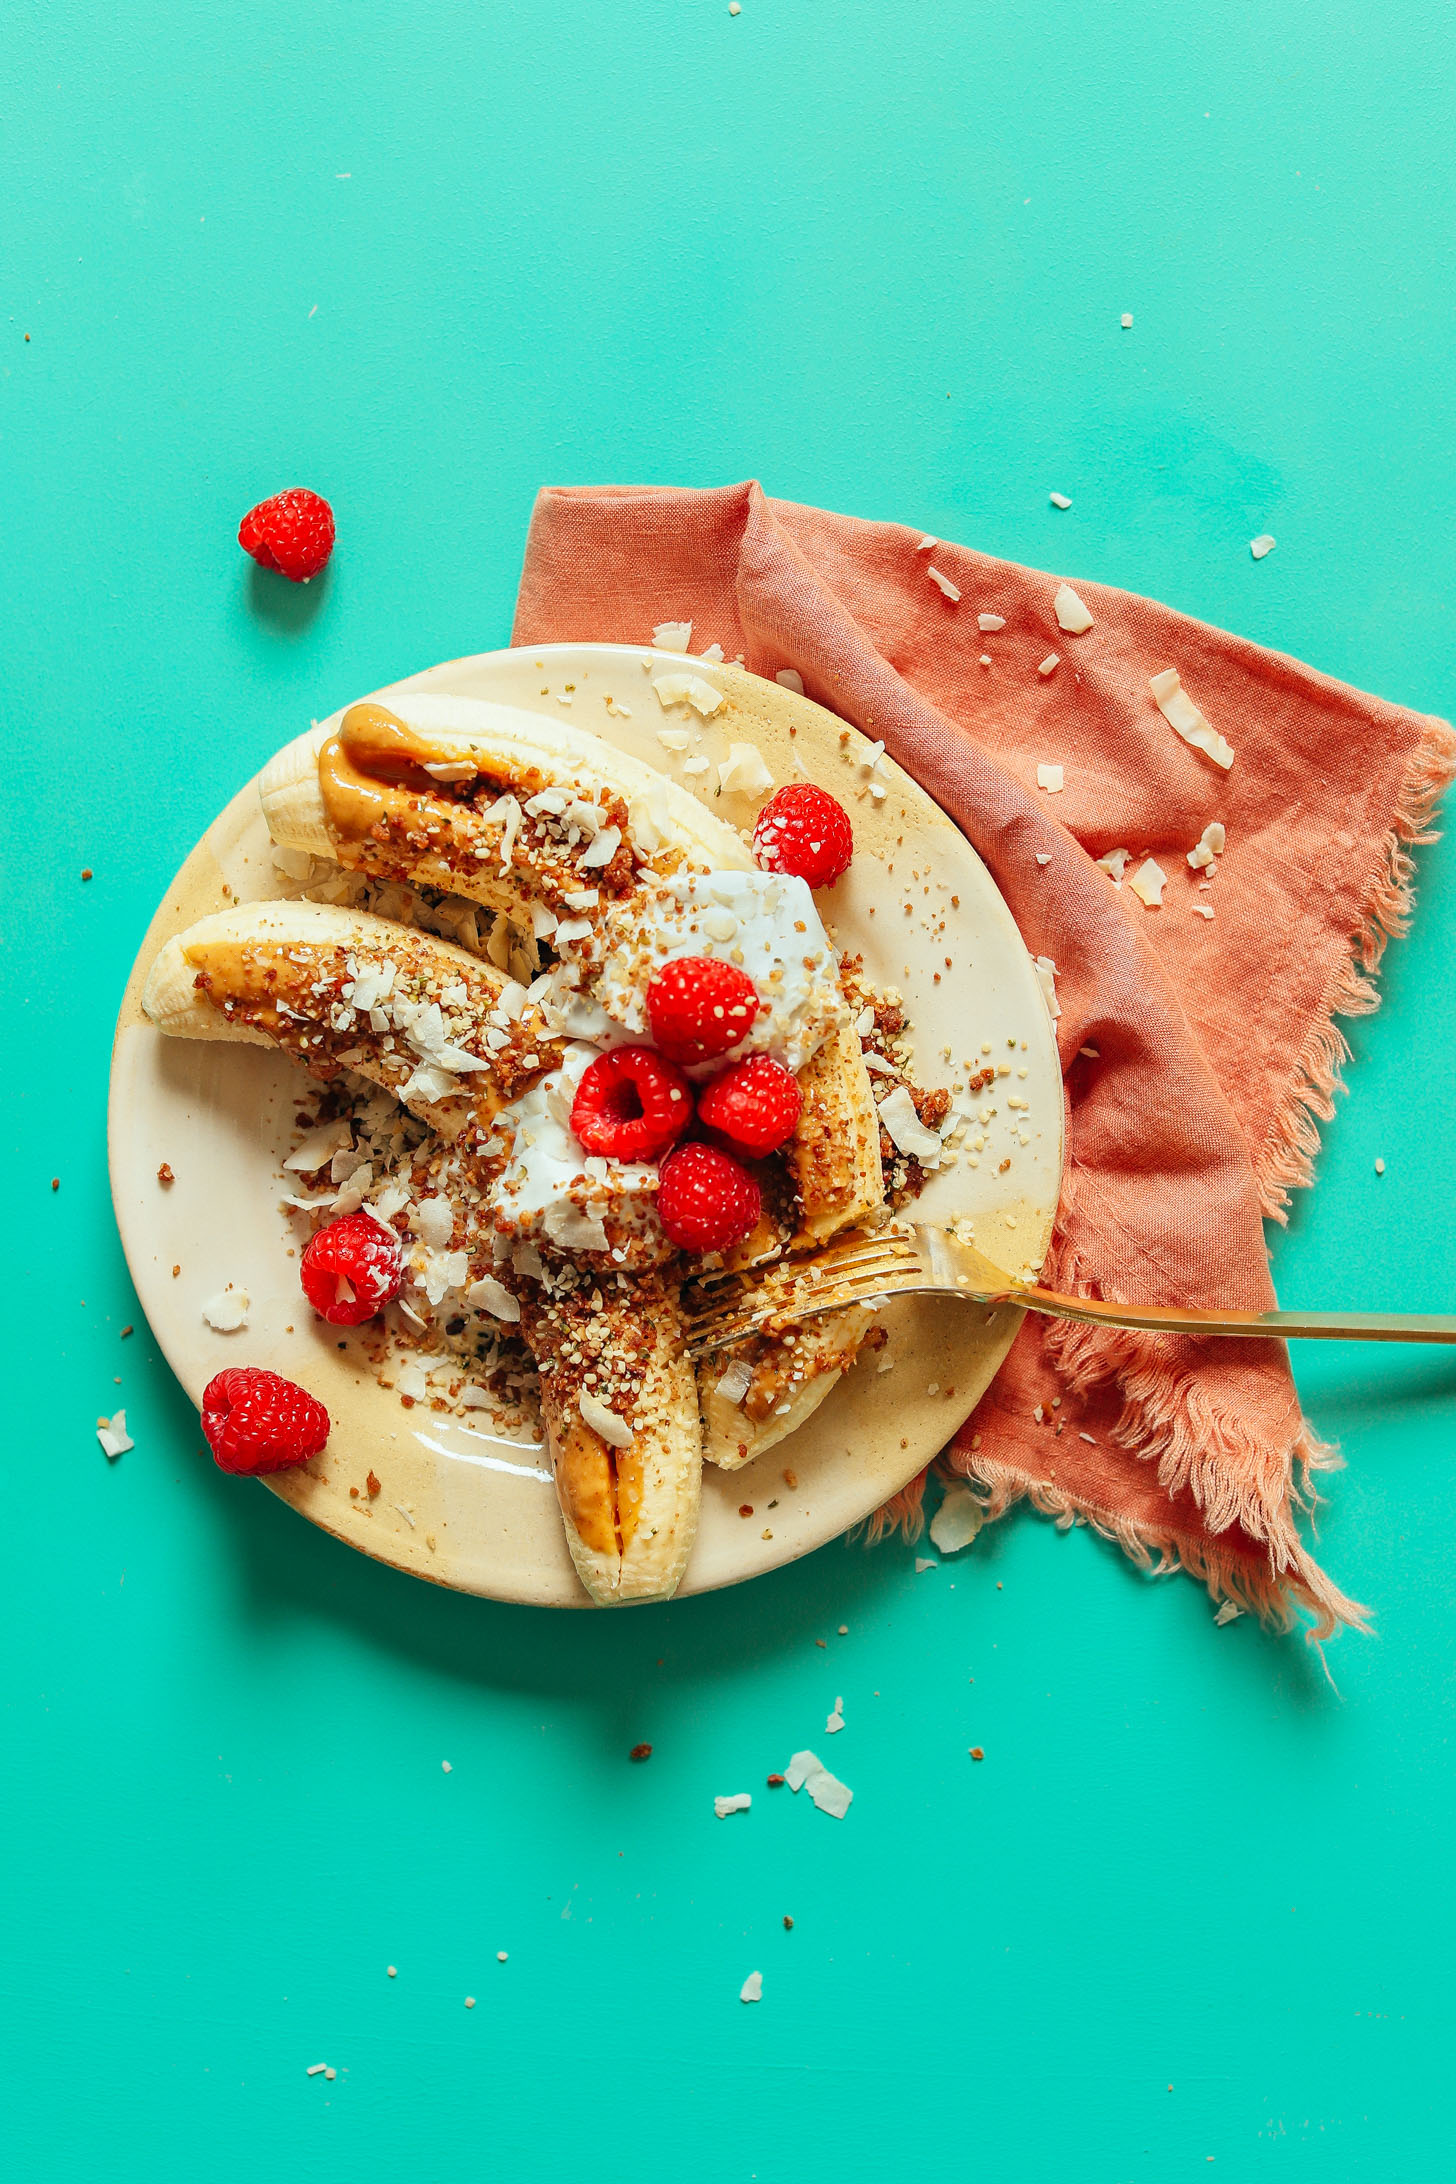 A serving plate with these protein and fiber-rich Raw Banana Splits served with Nut Butter, Coconut Yogurt, Berries, and more!